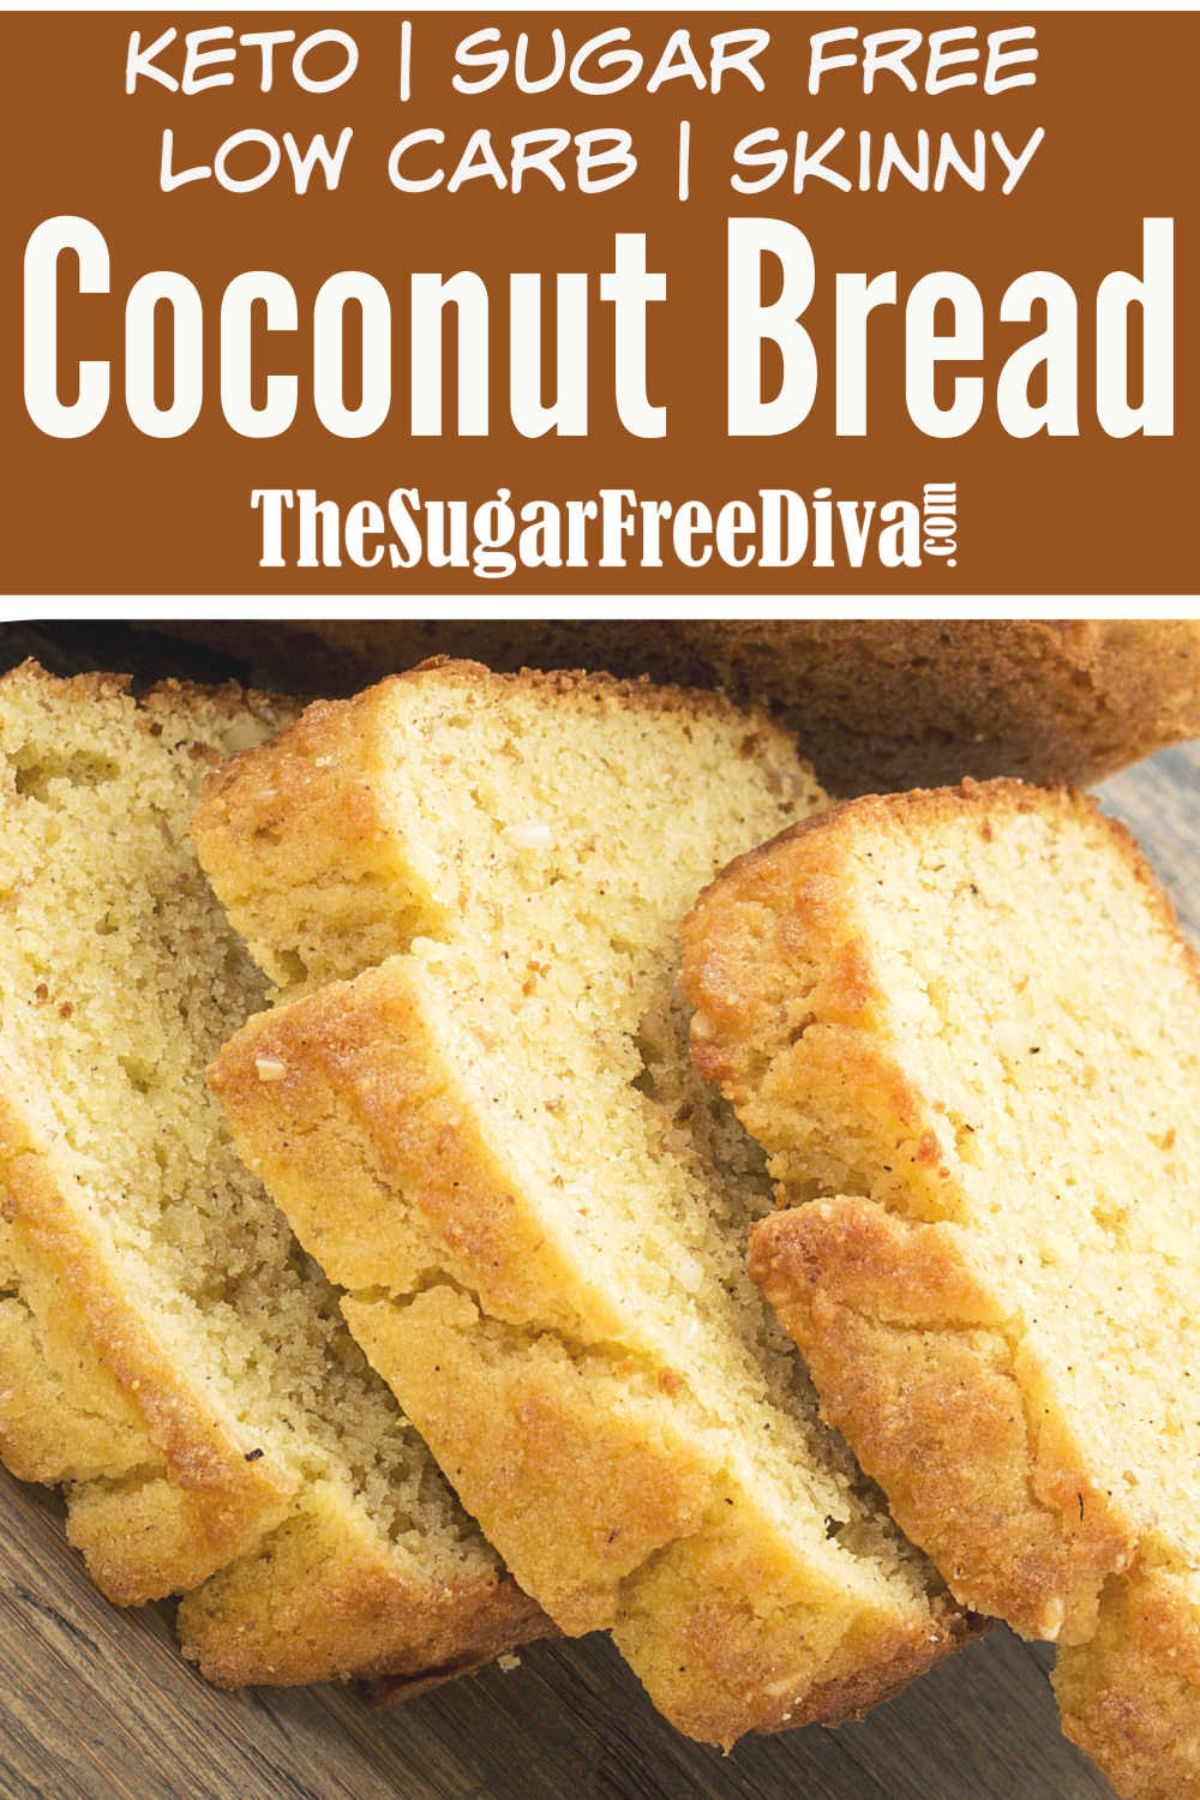 """The text reads """"Keto, sugar free, low carb, skinny coconut bread. The Sugar Free Diva.com"""". The photo is of 3 stacked slices of white bread"""